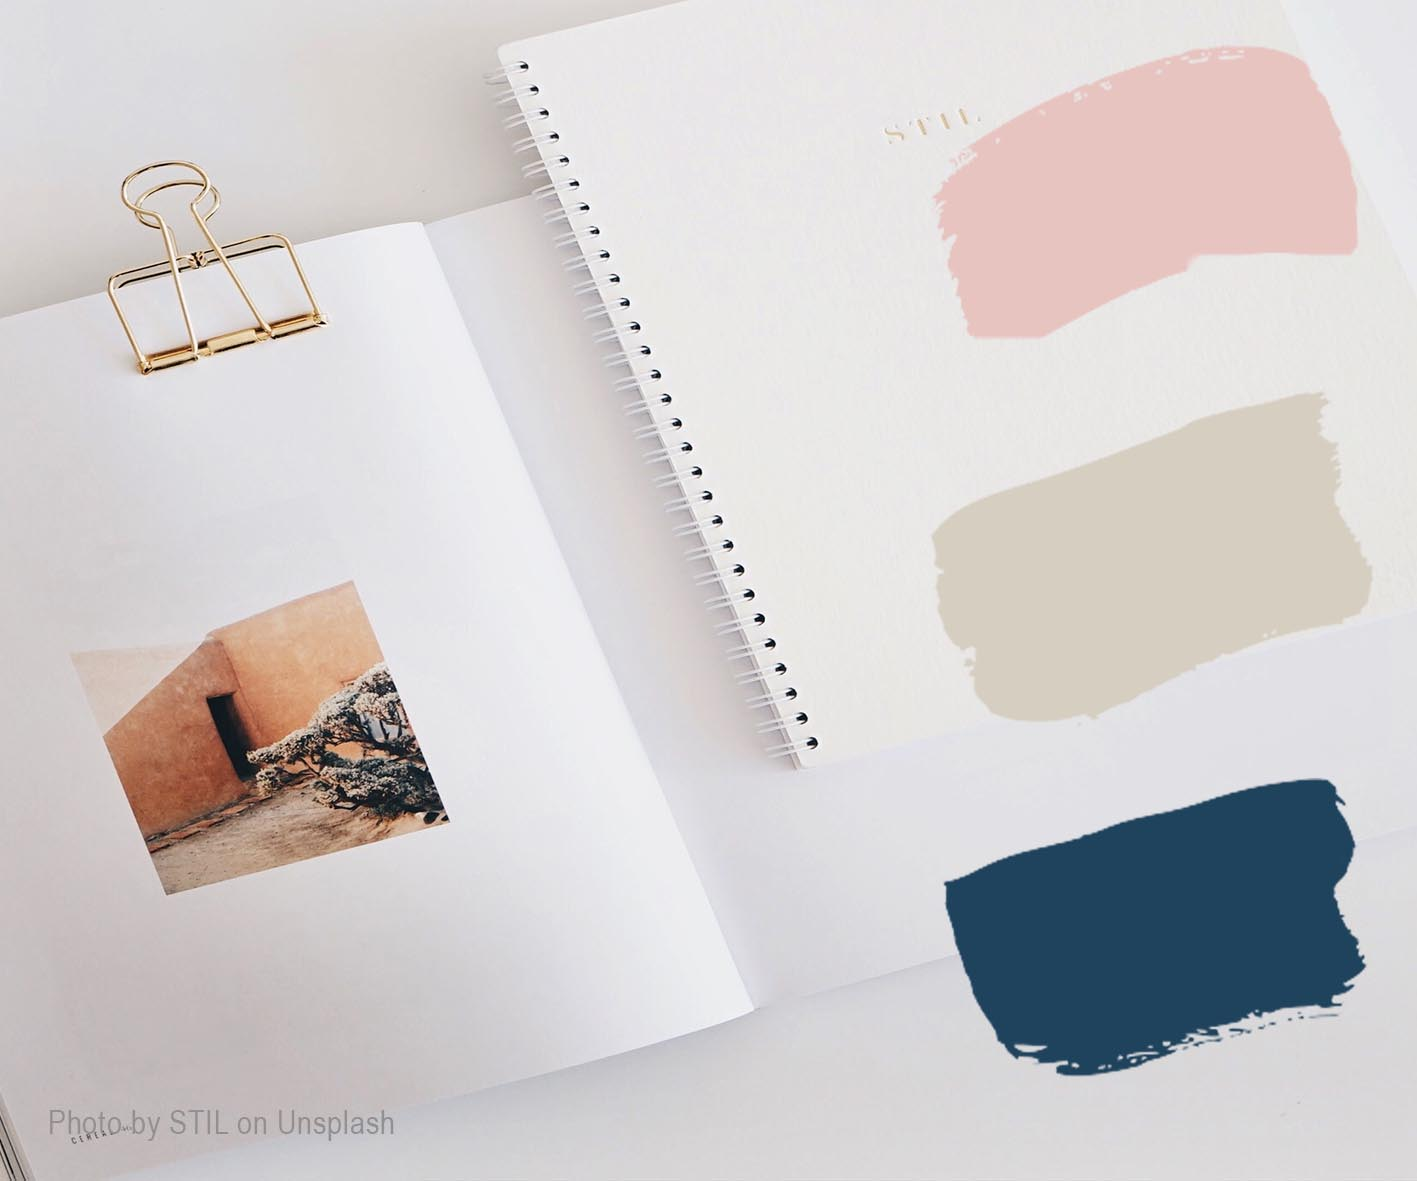 HOW-TO-CREATE-AN-INTERIOR-DESIGN-MOOD-BOARD - HOW-TO-CREATE-AN-INTERIOR-DESIGN-MOOD-BOARD